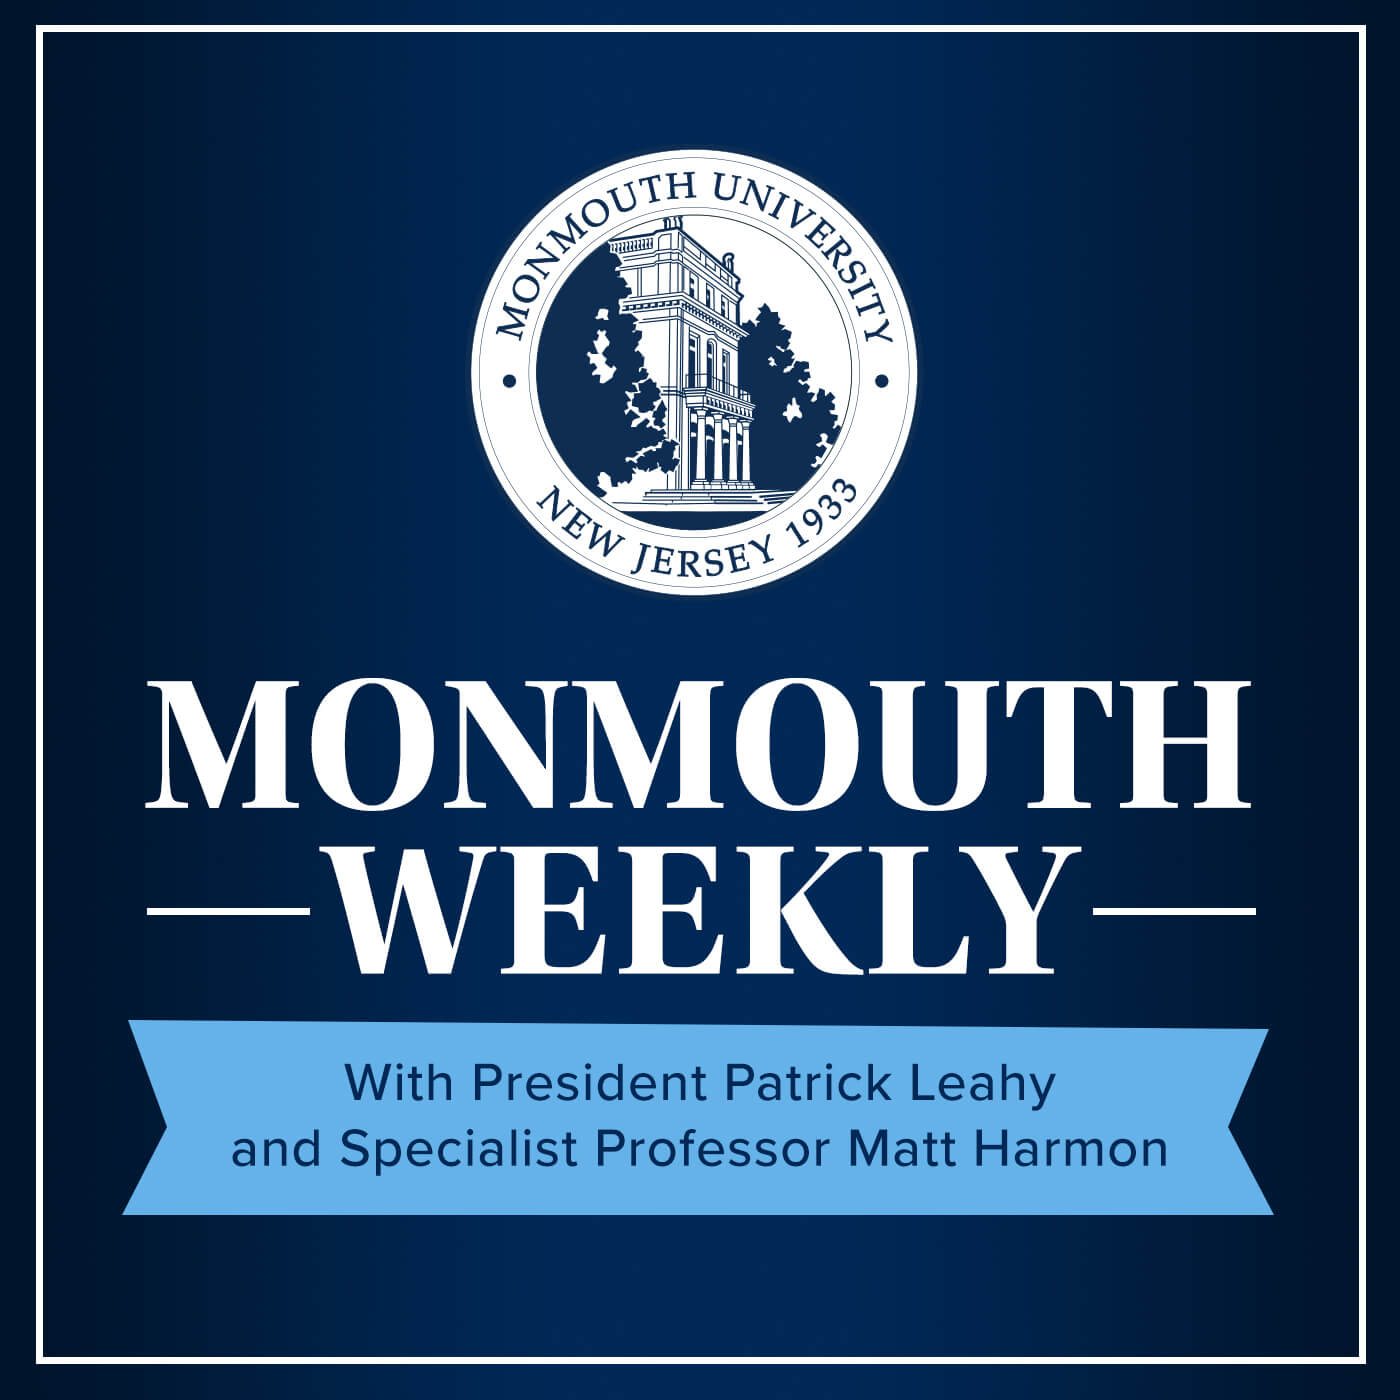 Monmouth Weekly